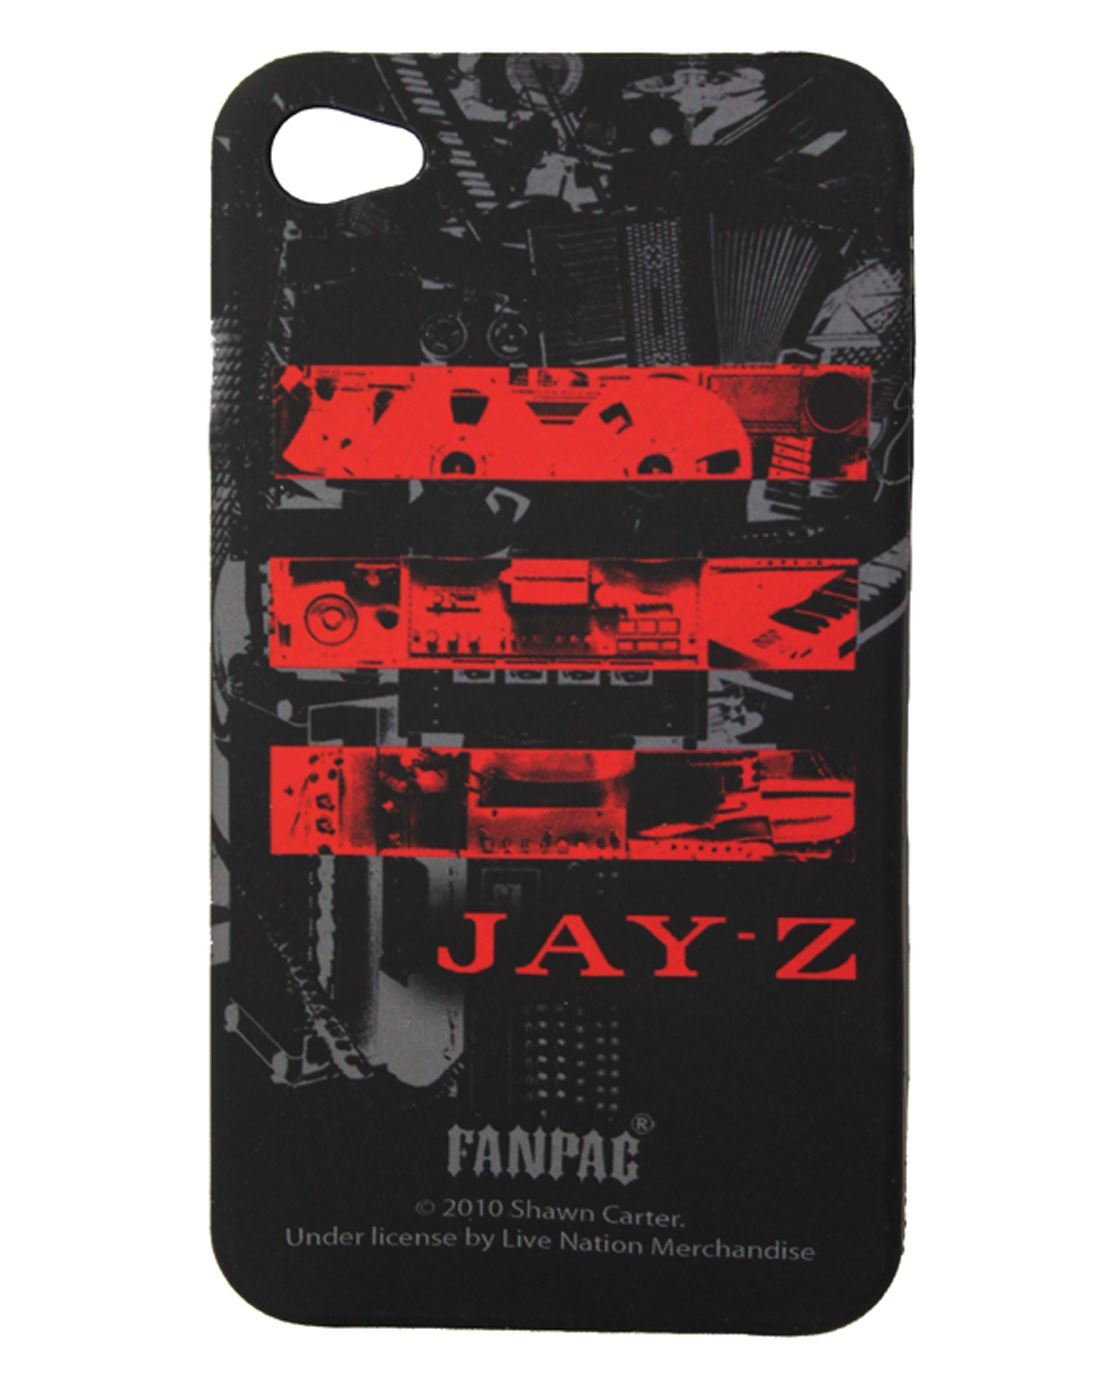 Jay z the blueprint 3 iphone 44g hard cover vanilla underground jay z the blueprint 3 iphone 44g hard cover malvernweather Image collections